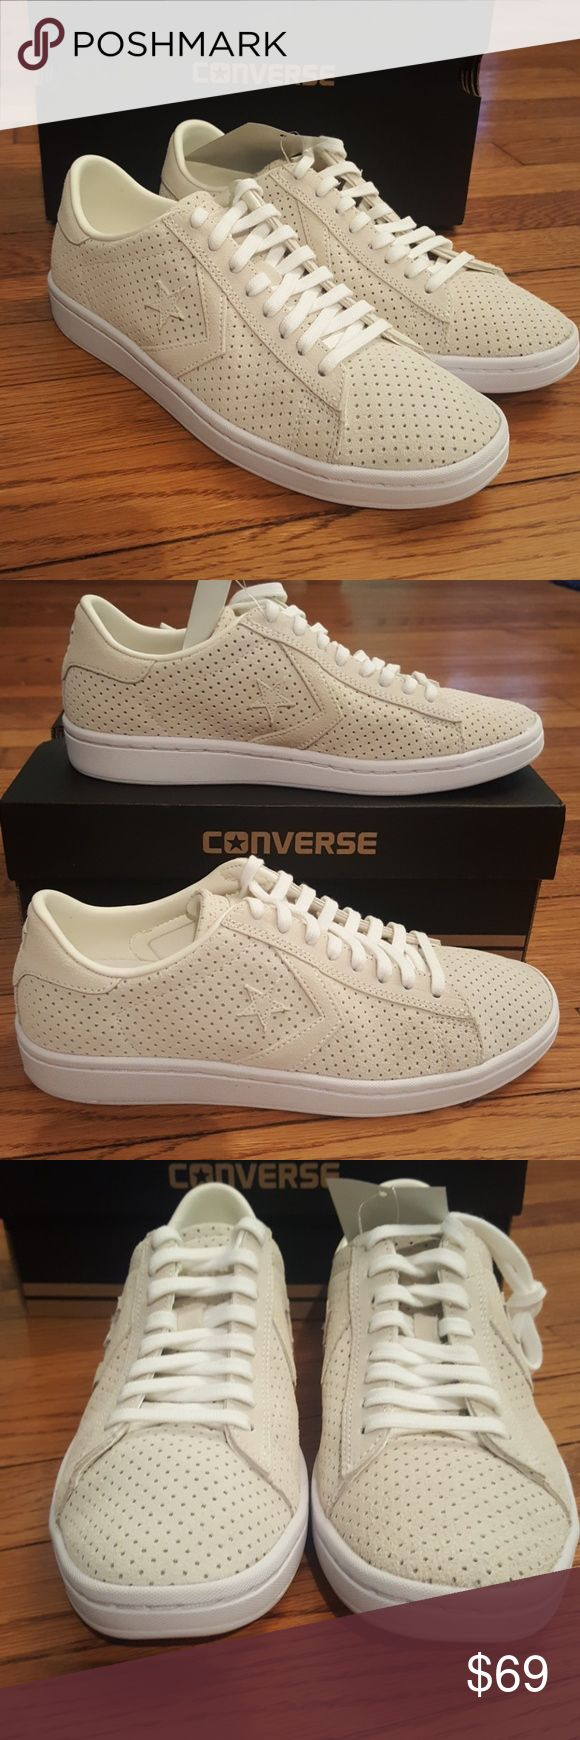 New Converse Pro Leather/Suede Sneakers Egret/White, perforated suede, lace up sneaker Converse Shoes Sneakers